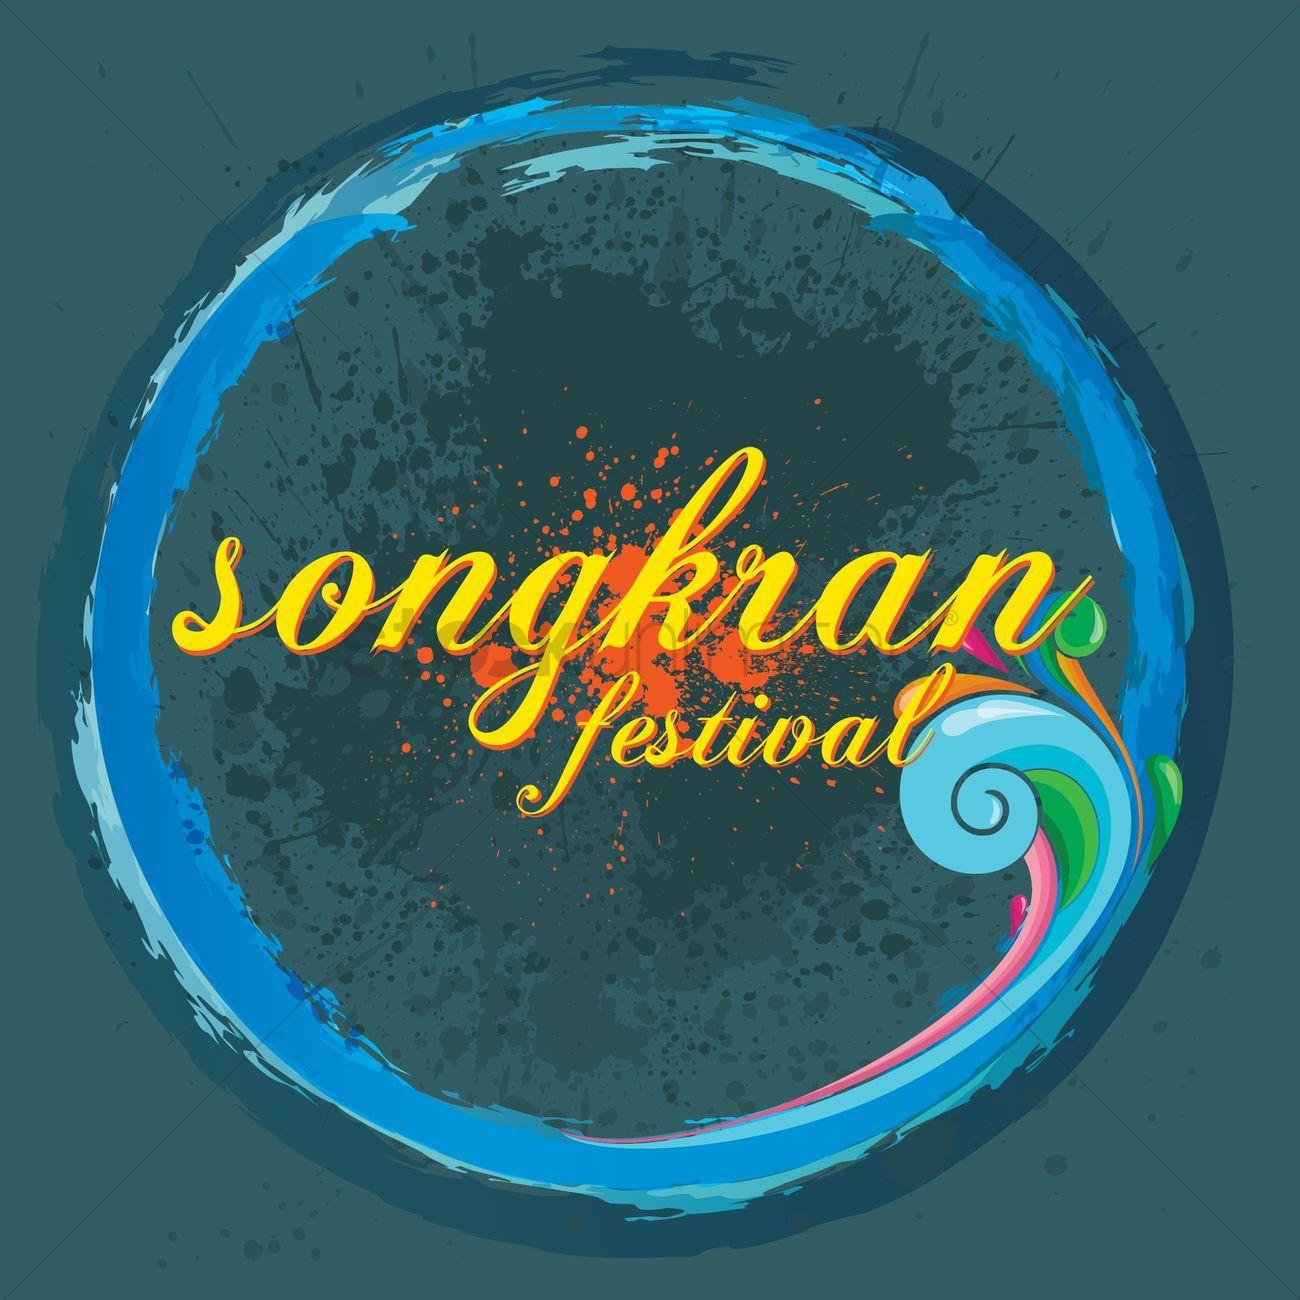 Songkran festival backgrounds Vector Image